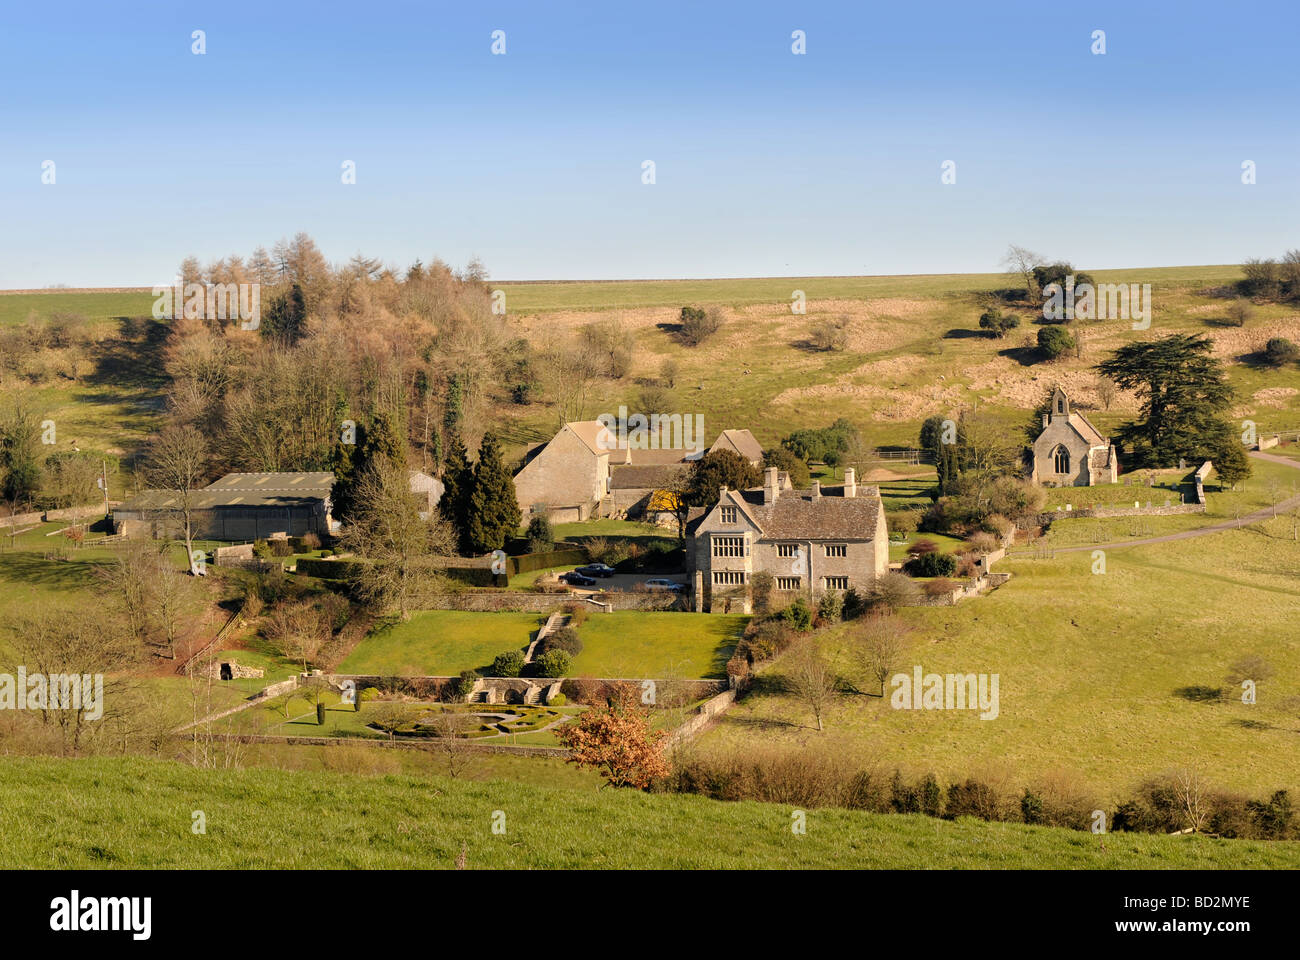 LASBOROUGH VILLAGE WITH THE MANOR HOUSE AND CHURCH IN GLOUCESTERSHIRE UK Stock Photo